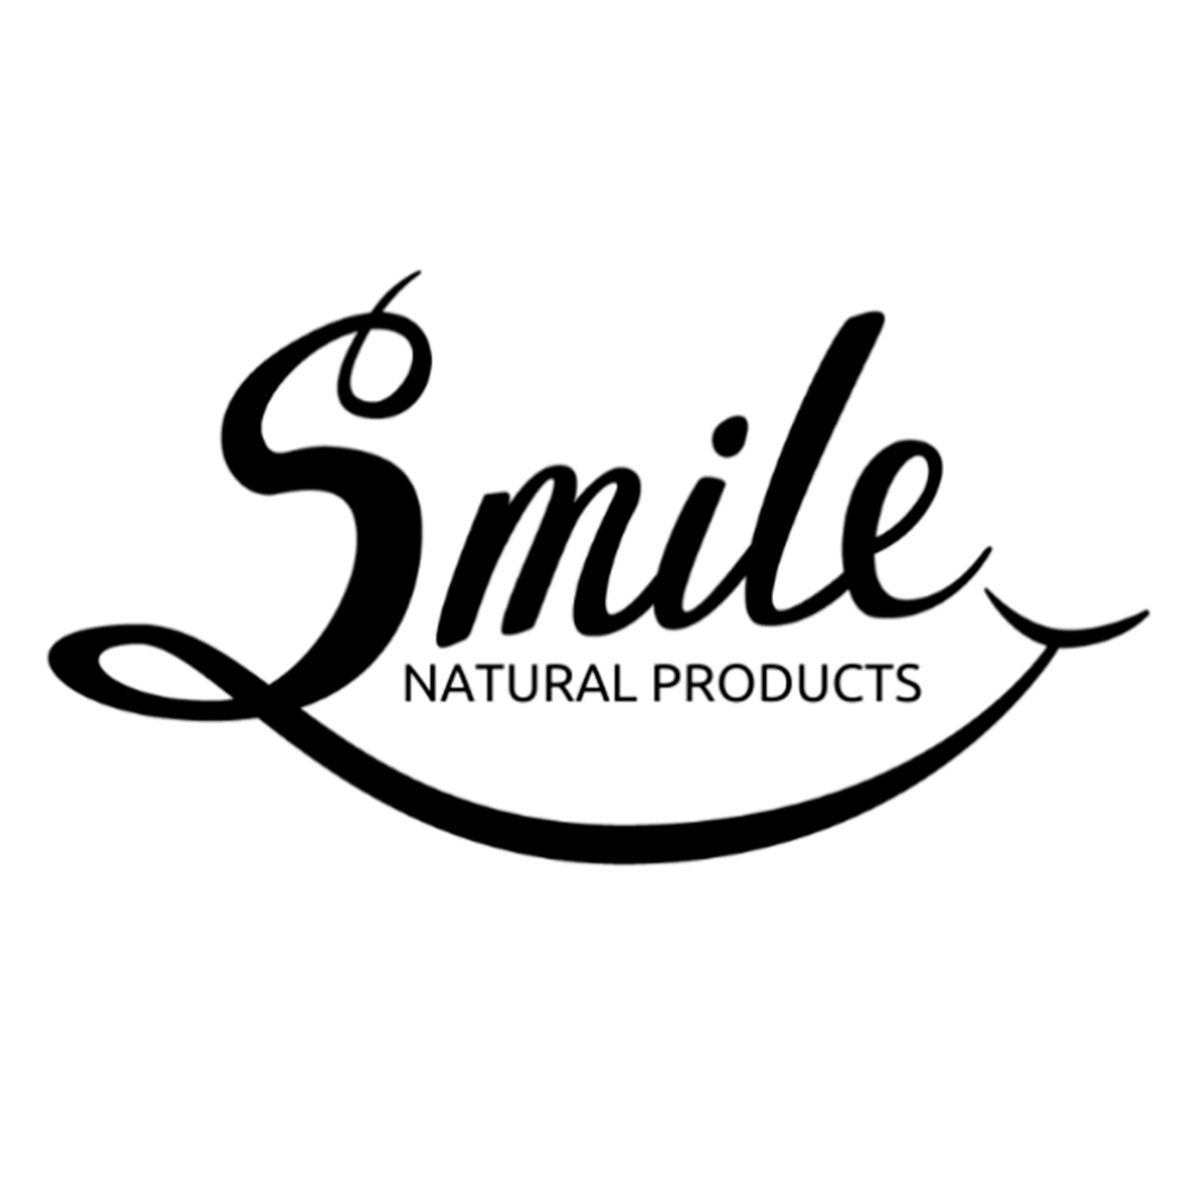 Via Smile Natural Products